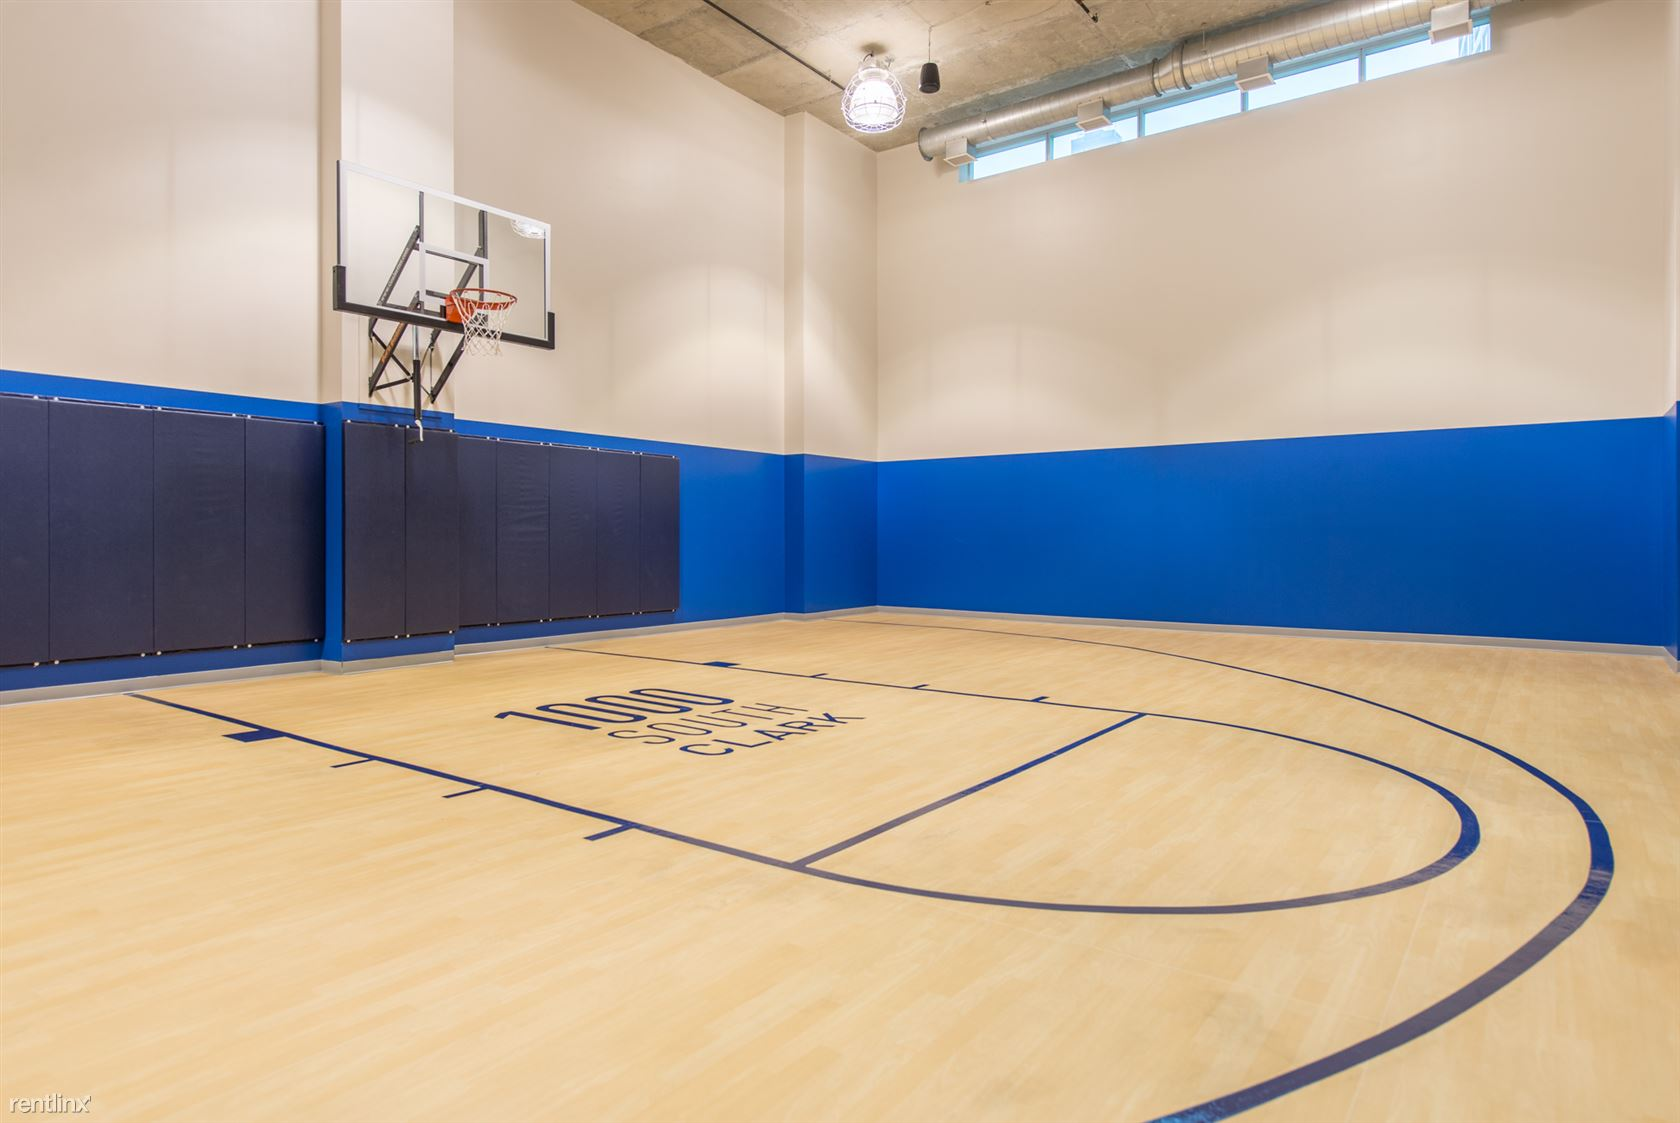 BasketballCourt